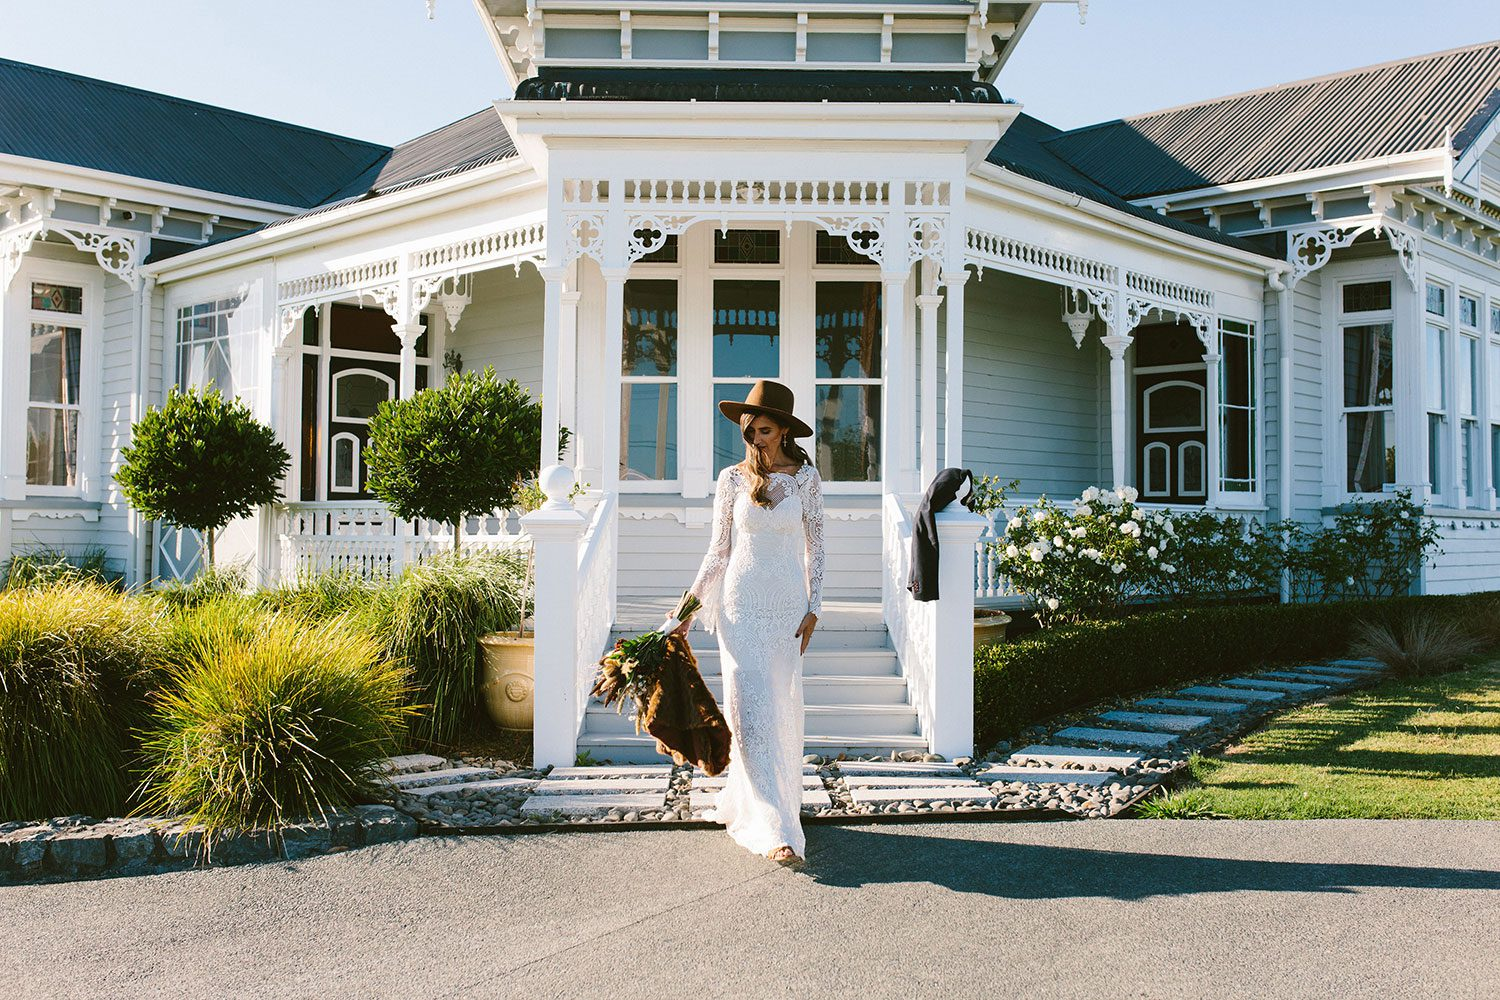 Bride wearing Sabine wedding gown by Auckland wedding dress maker Vinka Design, with French crochet lace detail and long sleeves - in front of house